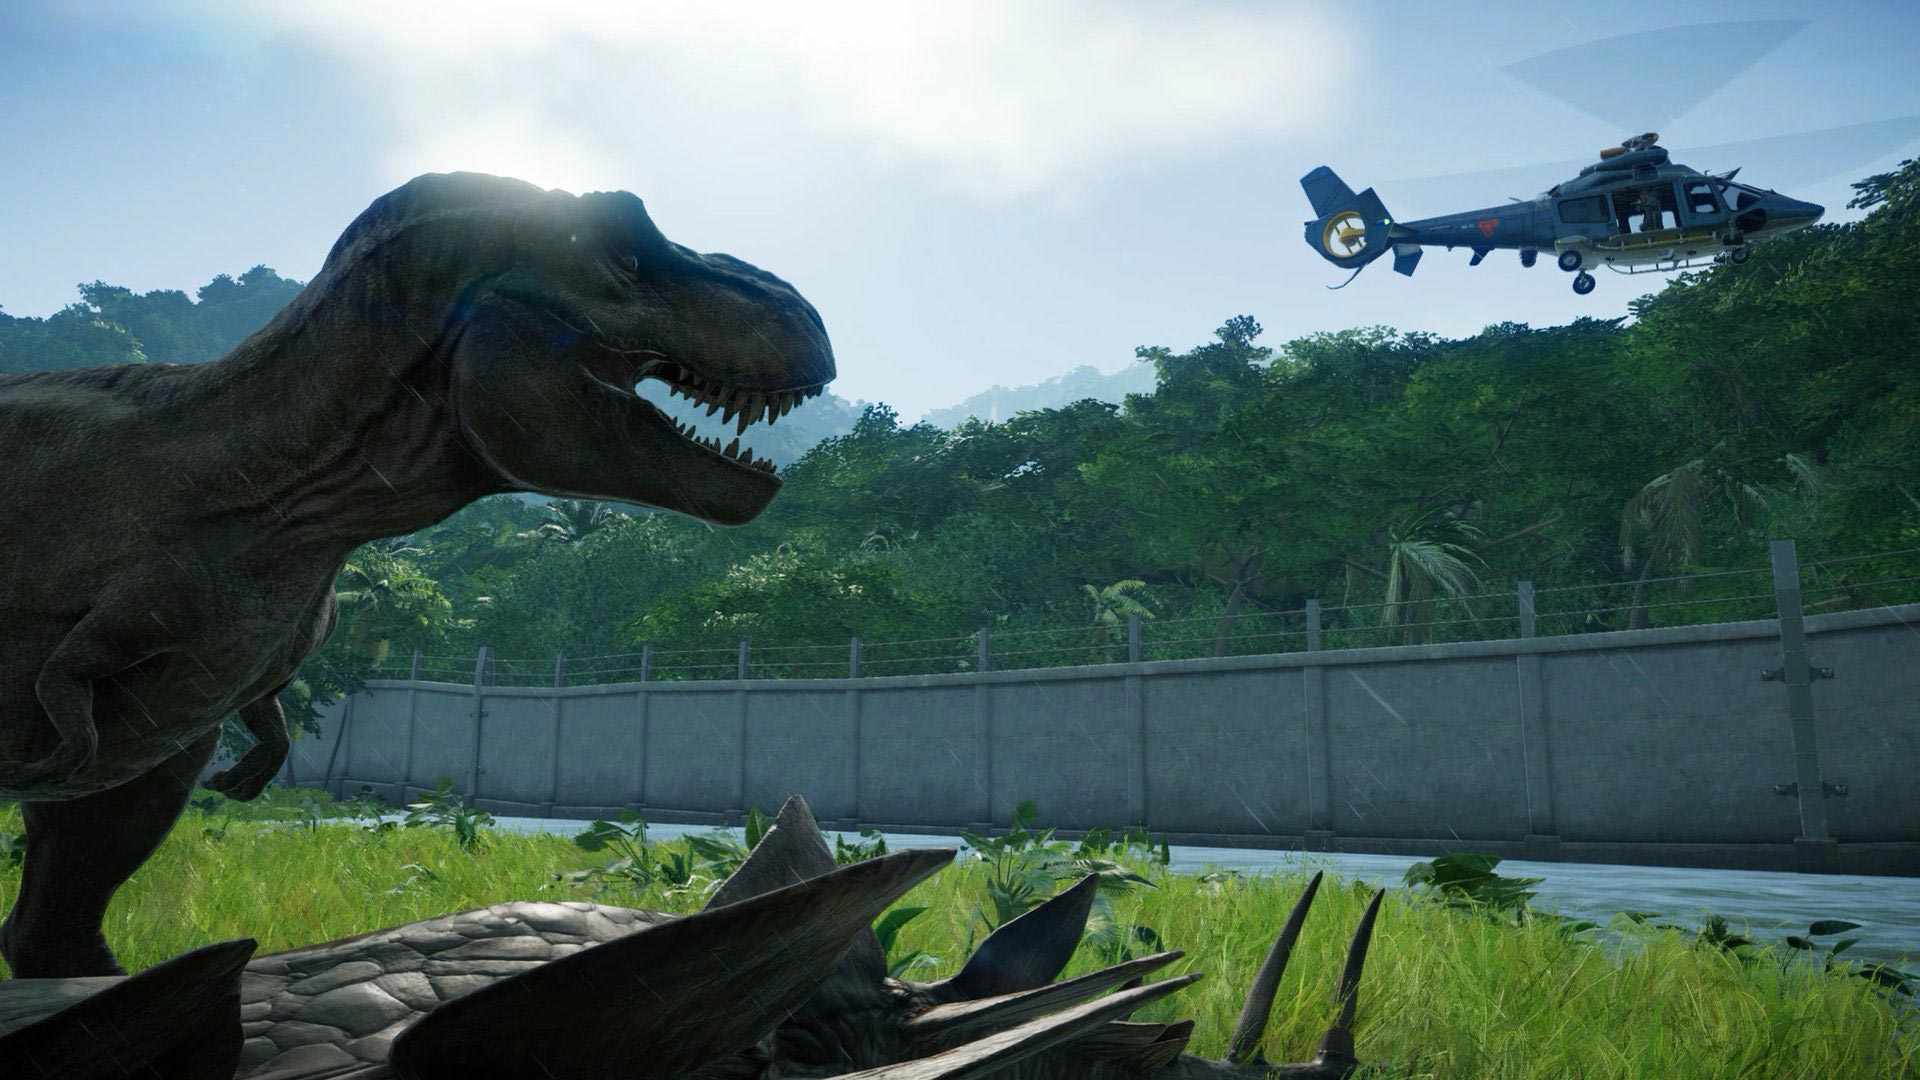 Building, Business, Dinosaurs, Frontier Developments, Jurassic World Evolution, Jurassic World Evolution Review, Jurassic World Evolution: Jurassic Park Edition, Jurassic World Evolution: Jurassic Park Edition Review, management, PS4, PS4 Review, Rating 9/10, simulation, strategy, Tycoon